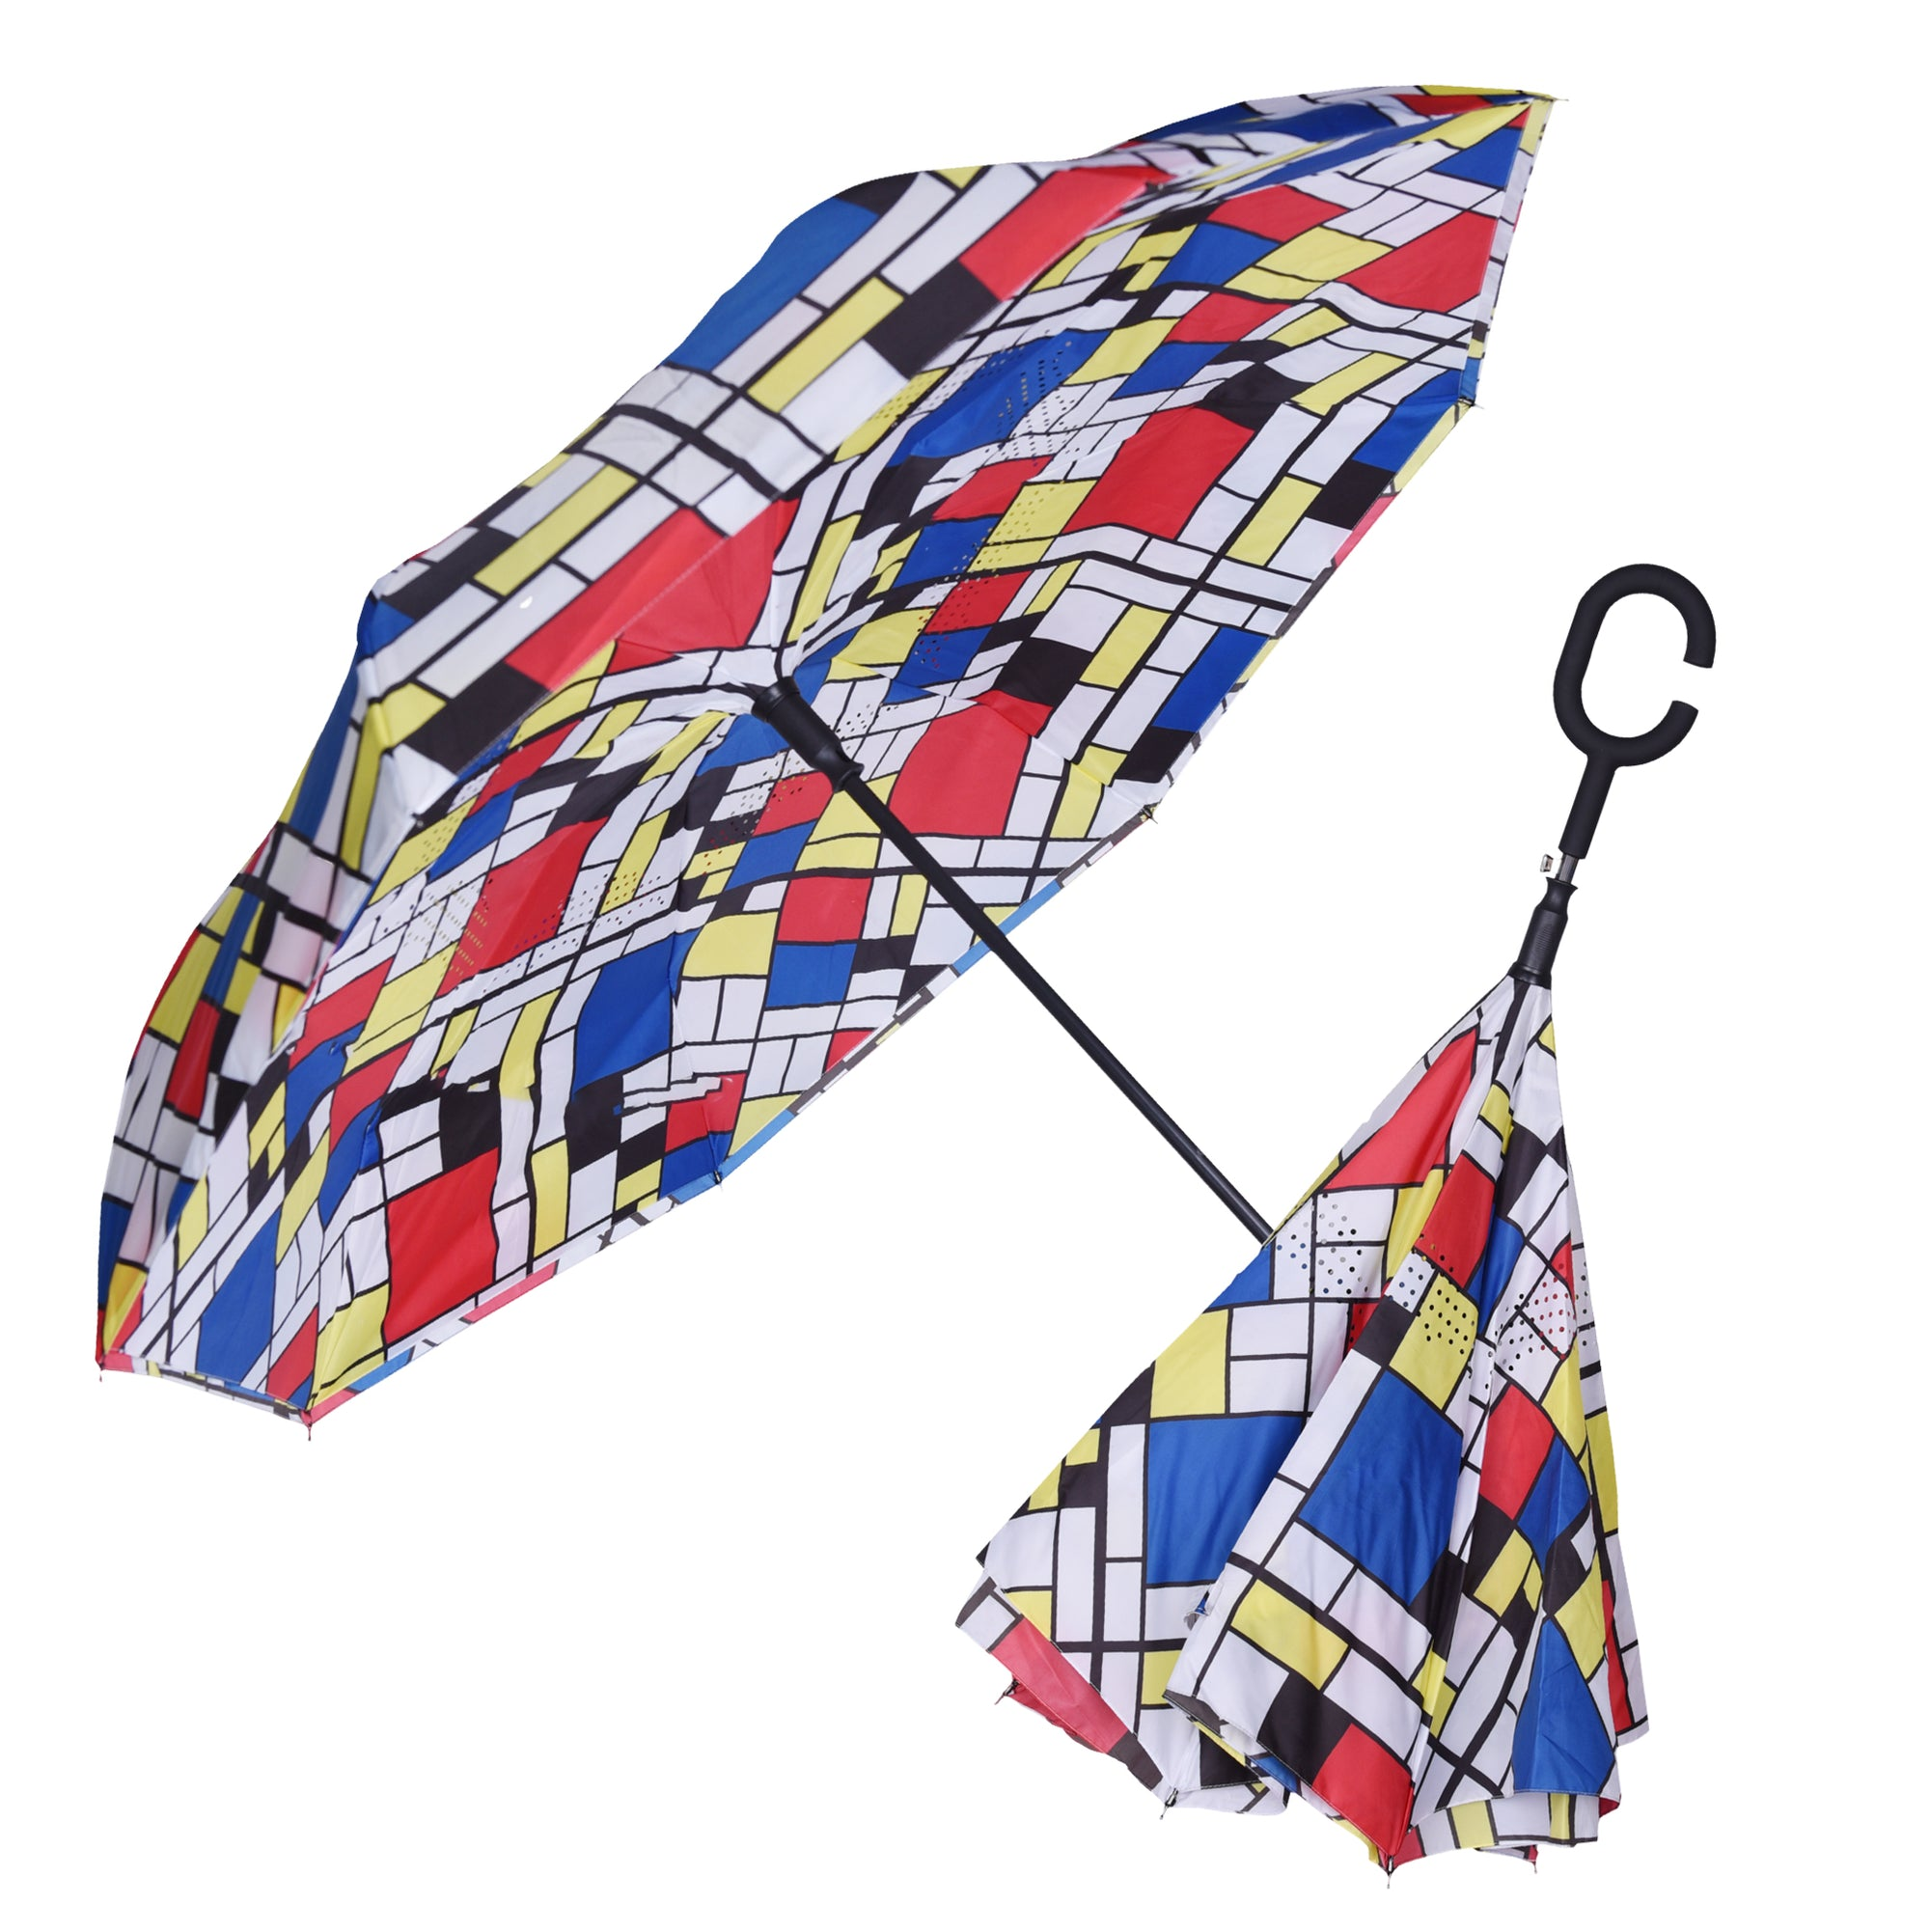 A video of a RainCaper  Mondrian's Composition II reverse (inside-out) umbrella opening and closing